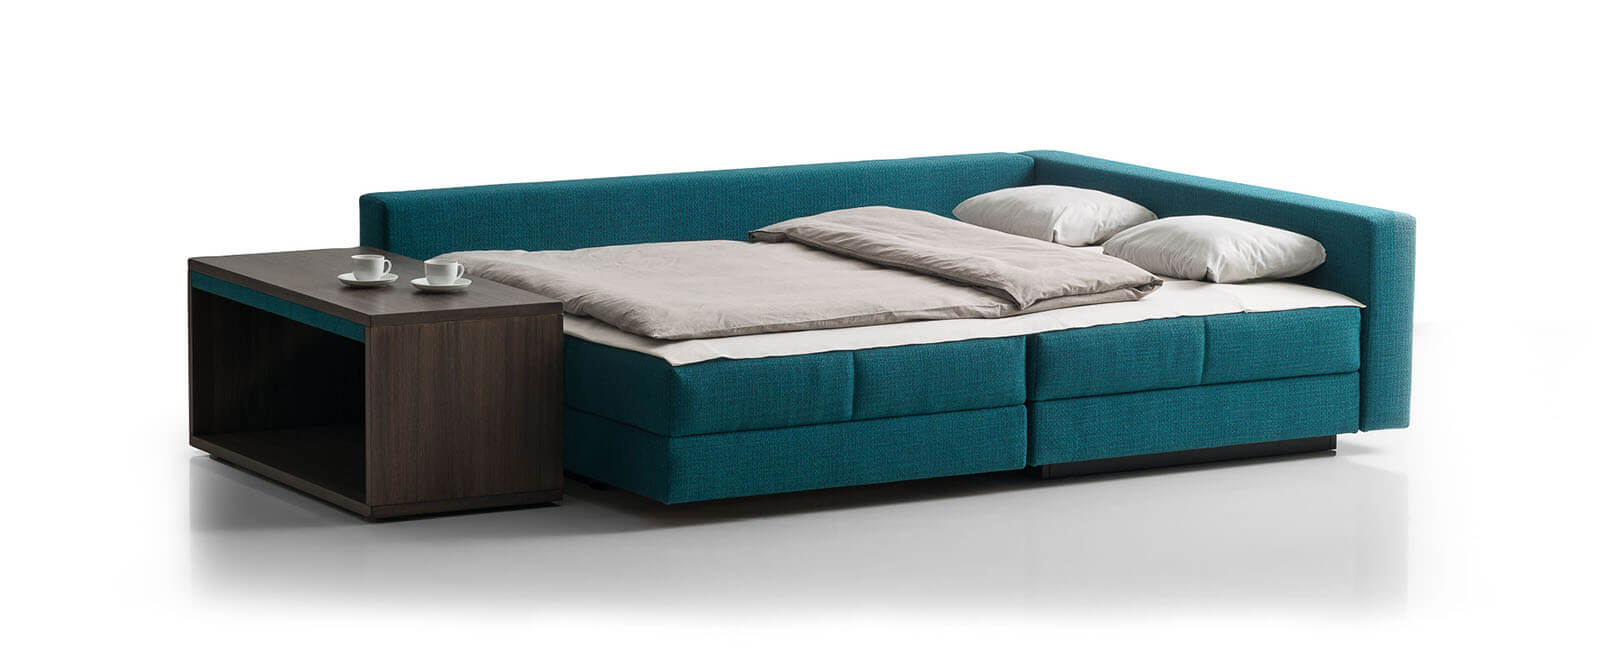 Cocco sectional sofa bed - Sofa cama esquina ...